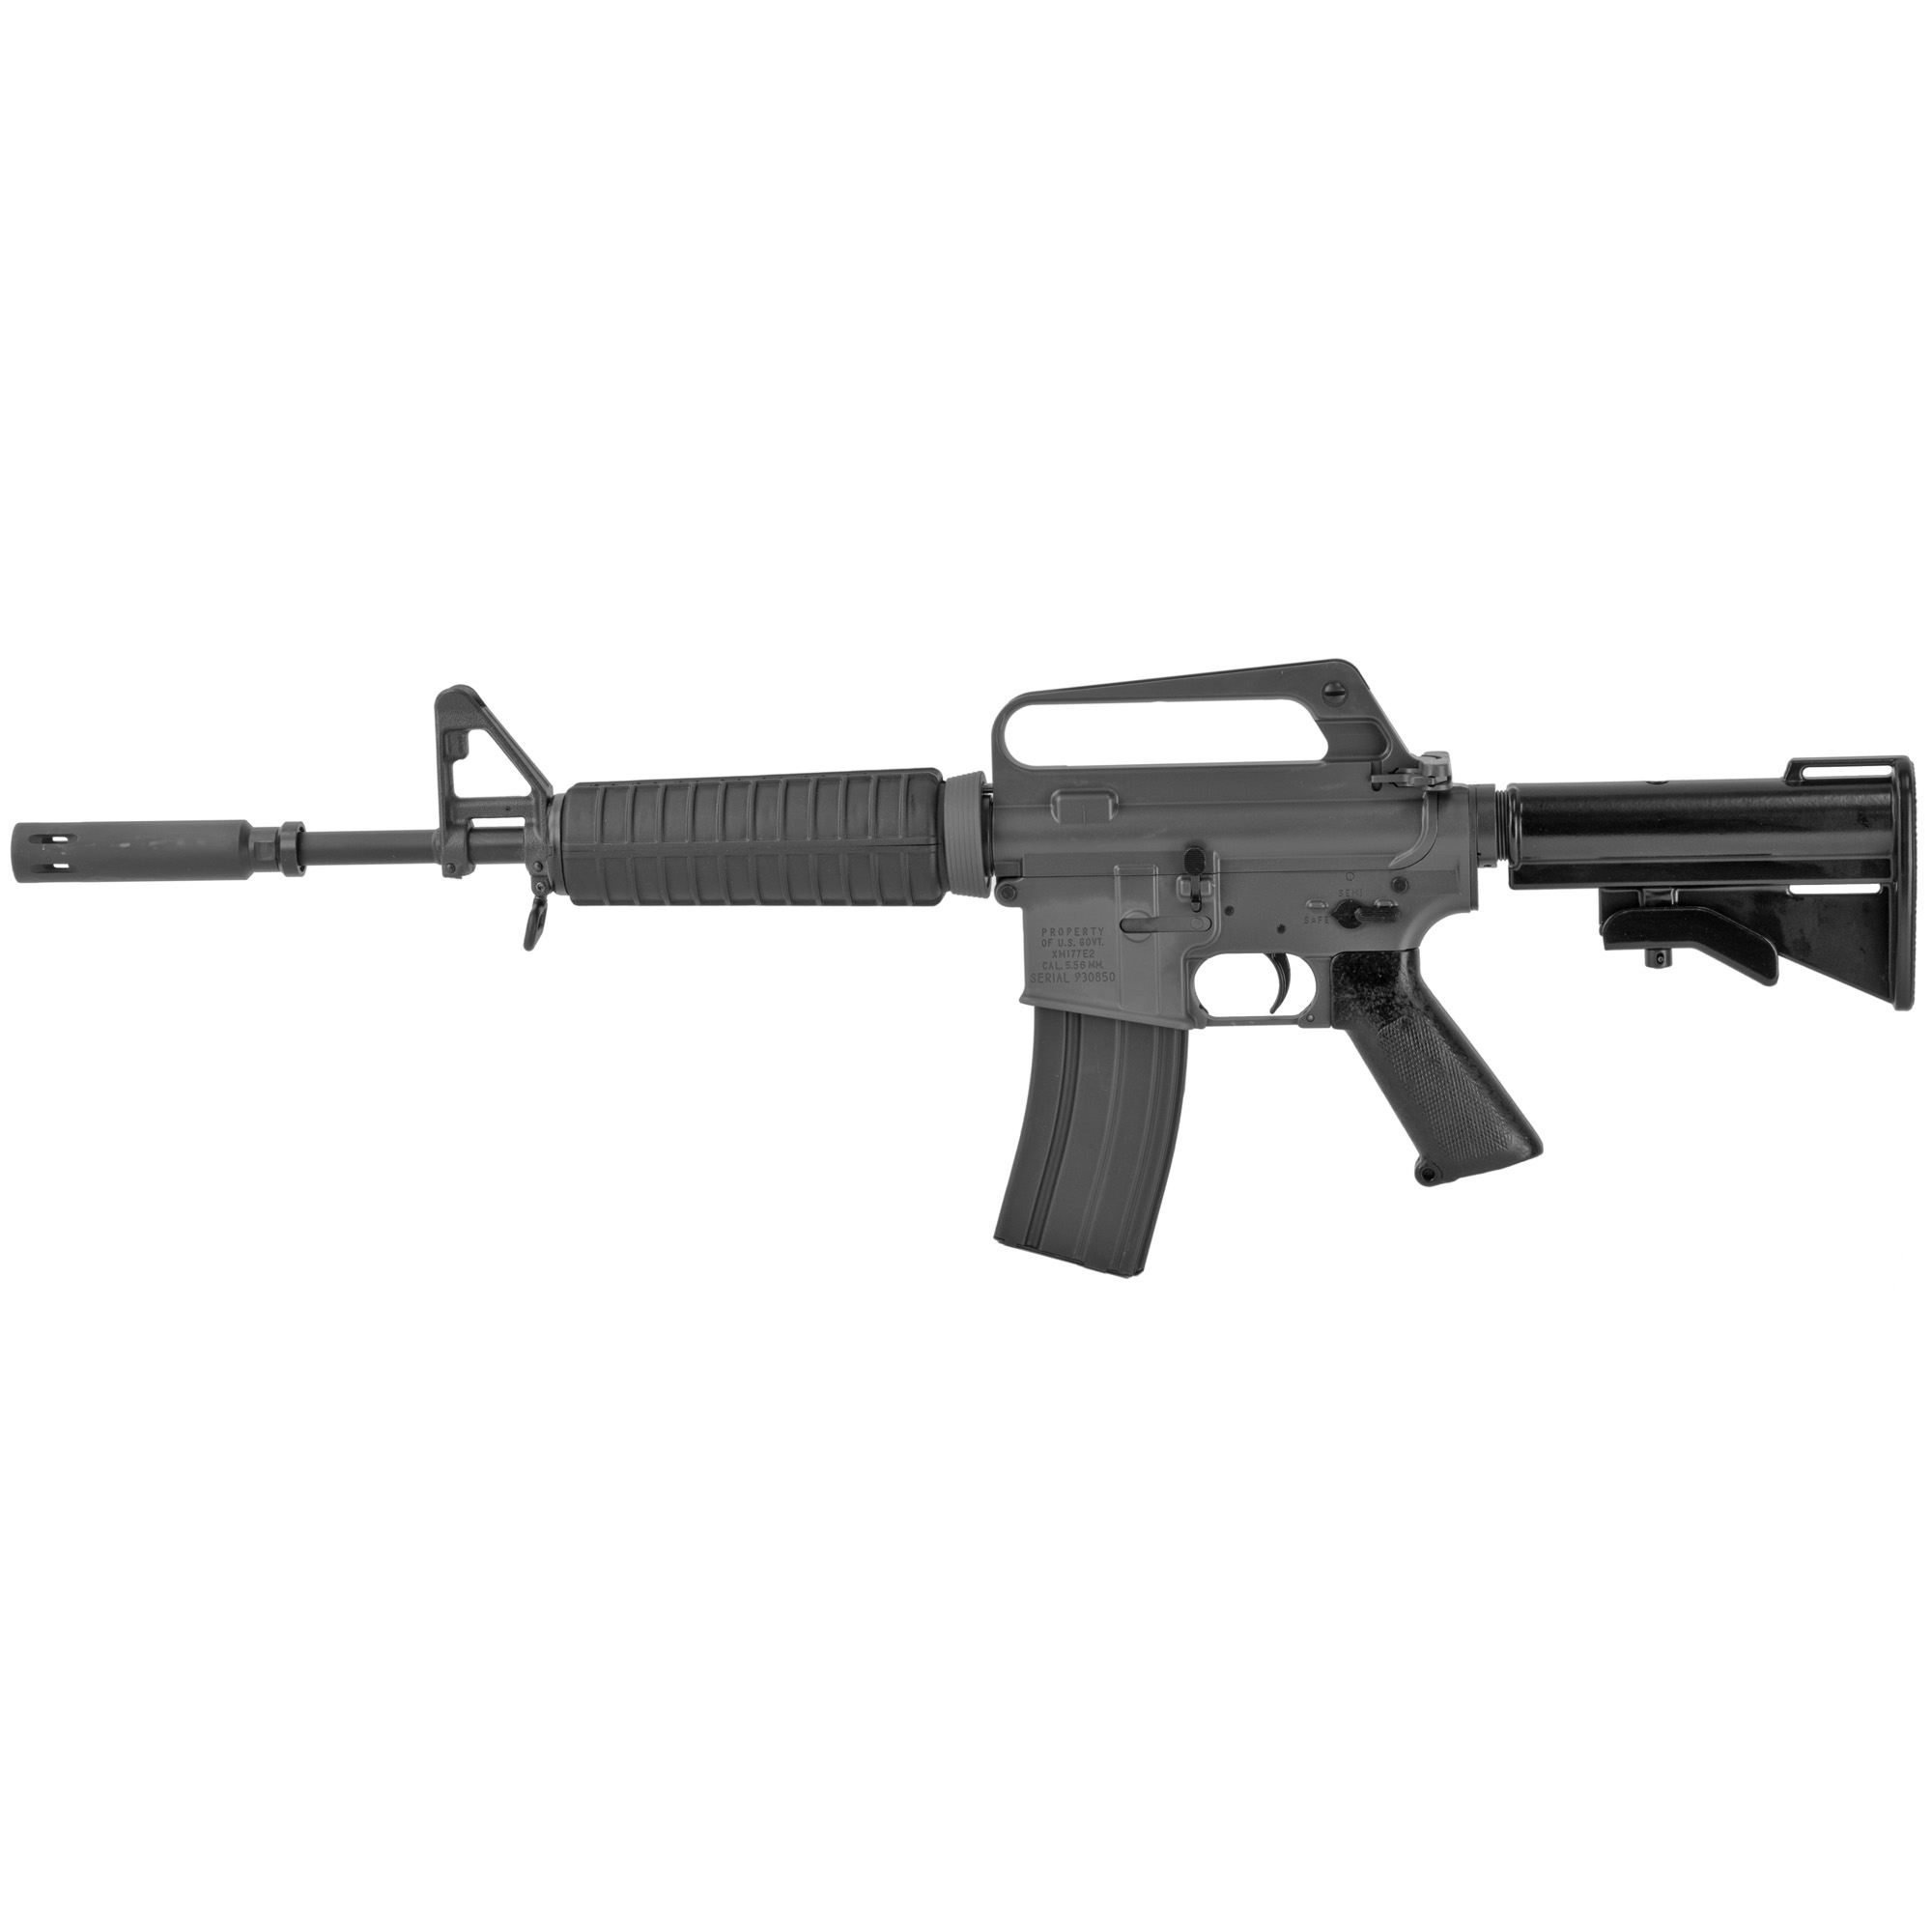 """In recognition of the 50th Anniversary of the legendary XM177E2 Commando"""" TROY has taken responsibility to meticulously recreate it"""" to exacting 1967 U.S. military specifications"""" ensuring the historical accuracy and functional reliability of this venerable carbine. The XM177E2 is a U.S. Special Operations icon specifically built for the covert combat needs of MACV-SOG in Vietnam. The TROY XM177E2 Commando is of heirloom quality and aesthetically precise. Immortalizing duty"""" sacrifice and honor"""" proceeds from each XM177E2 will support the charitable efforts of The Special Forces Association and the Special Operations Association as they"""" """"Commemorate fittingly the memory of those who have given their lives in defense of the Free World."""""""